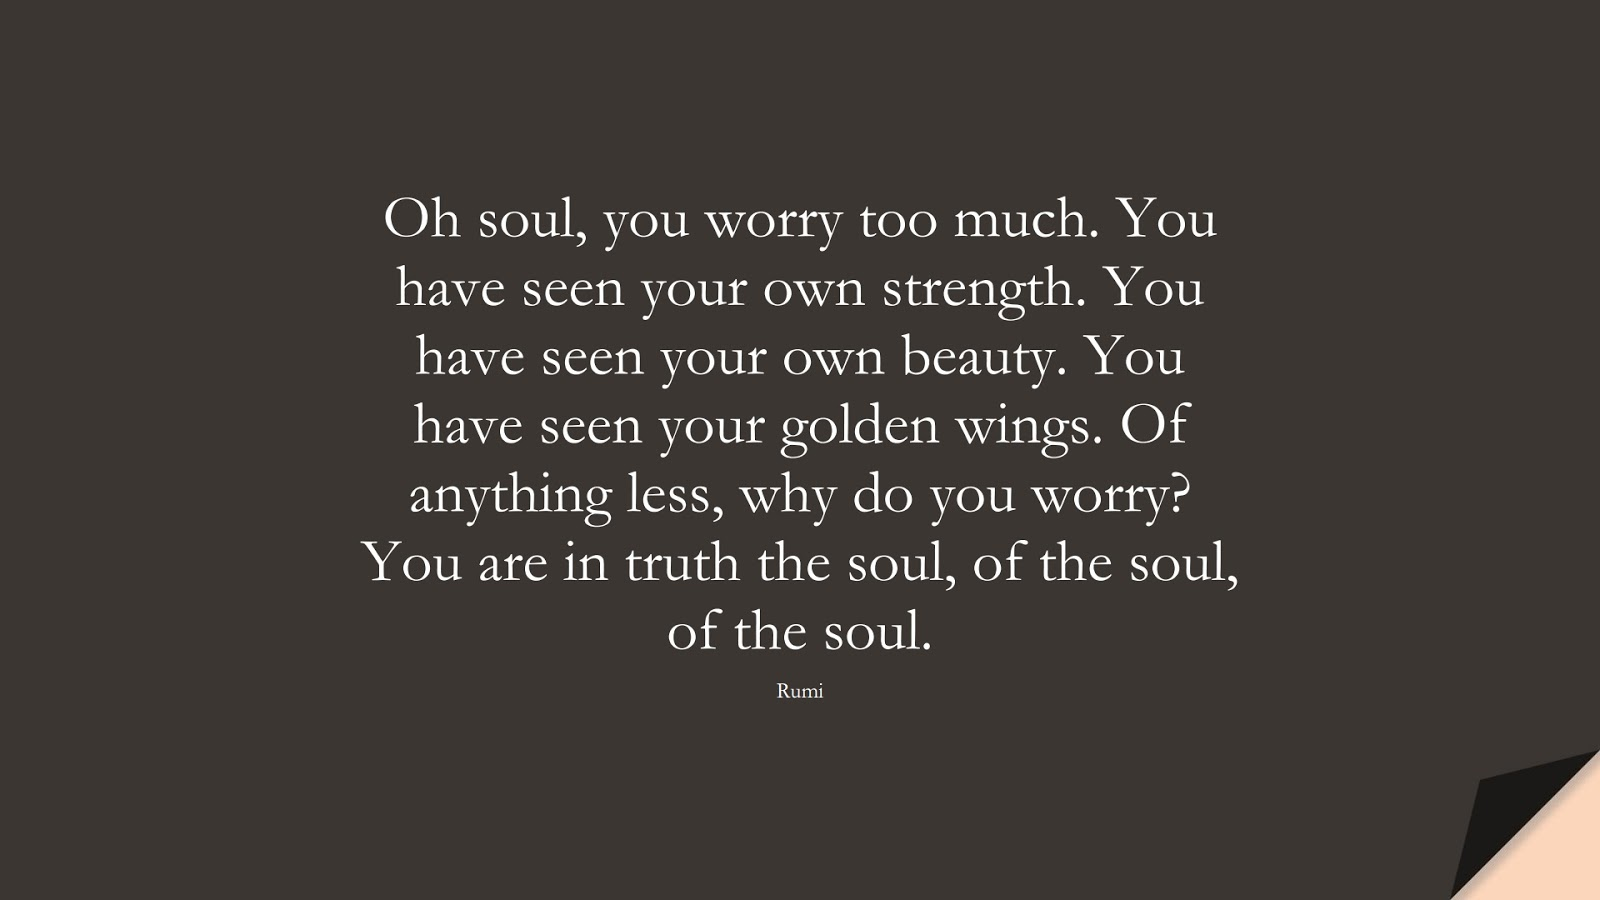 Oh soul, you worry too much. You have seen your own strength. You have seen your own beauty. You have seen your golden wings. Of anything less, why do you worry? You are in truth the soul, of the soul, of the soul. (Rumi);  #RumiQuotes